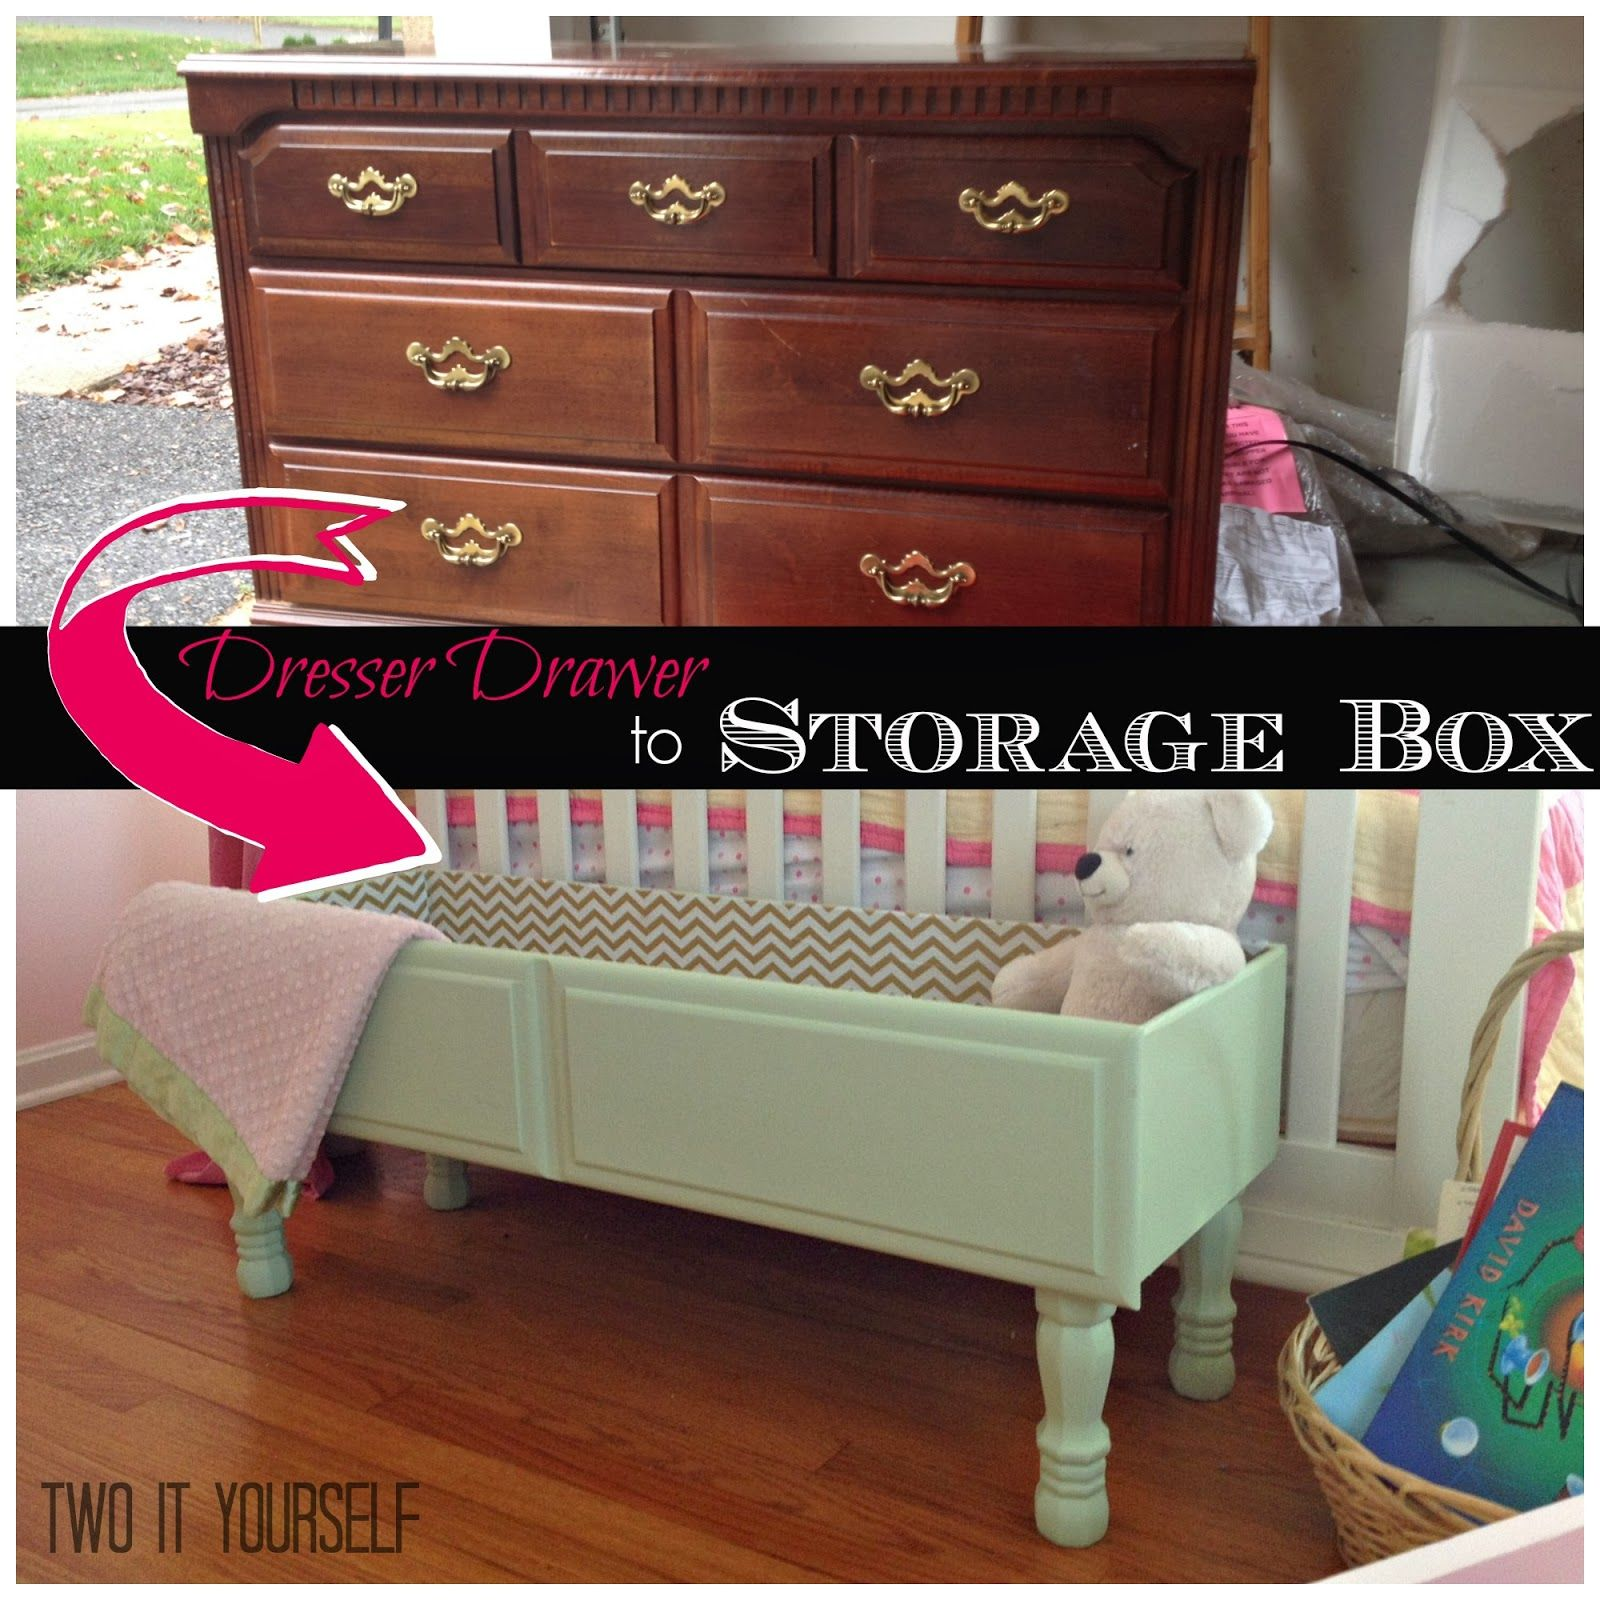 Dresser Drawer to Storage Box {Easy DIY Project